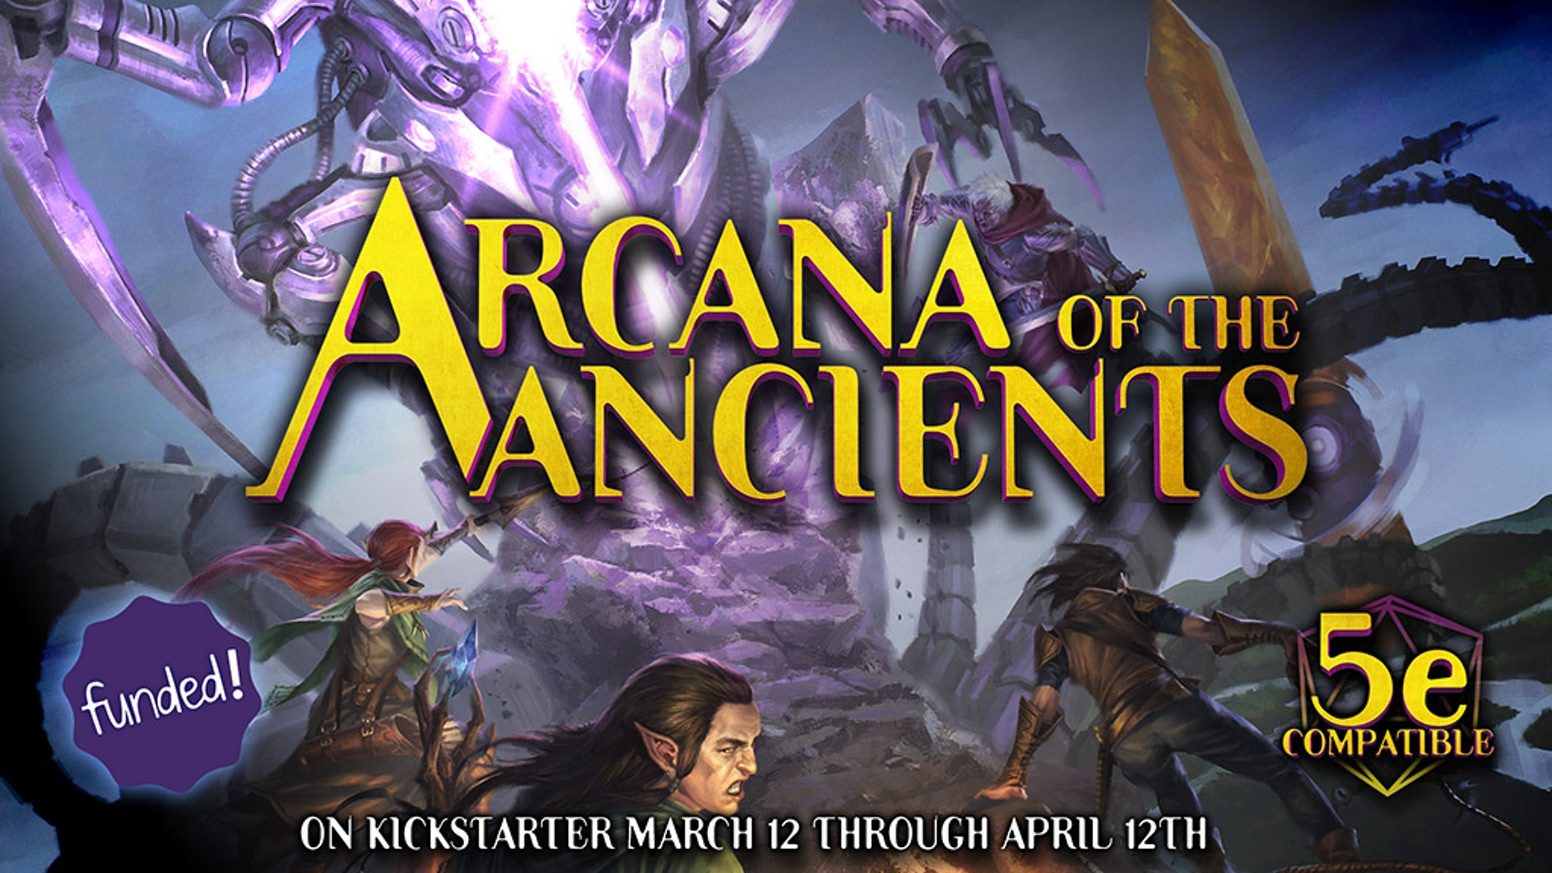 Arcana of the Ancients, a 5E science-fantasy sourcebook by